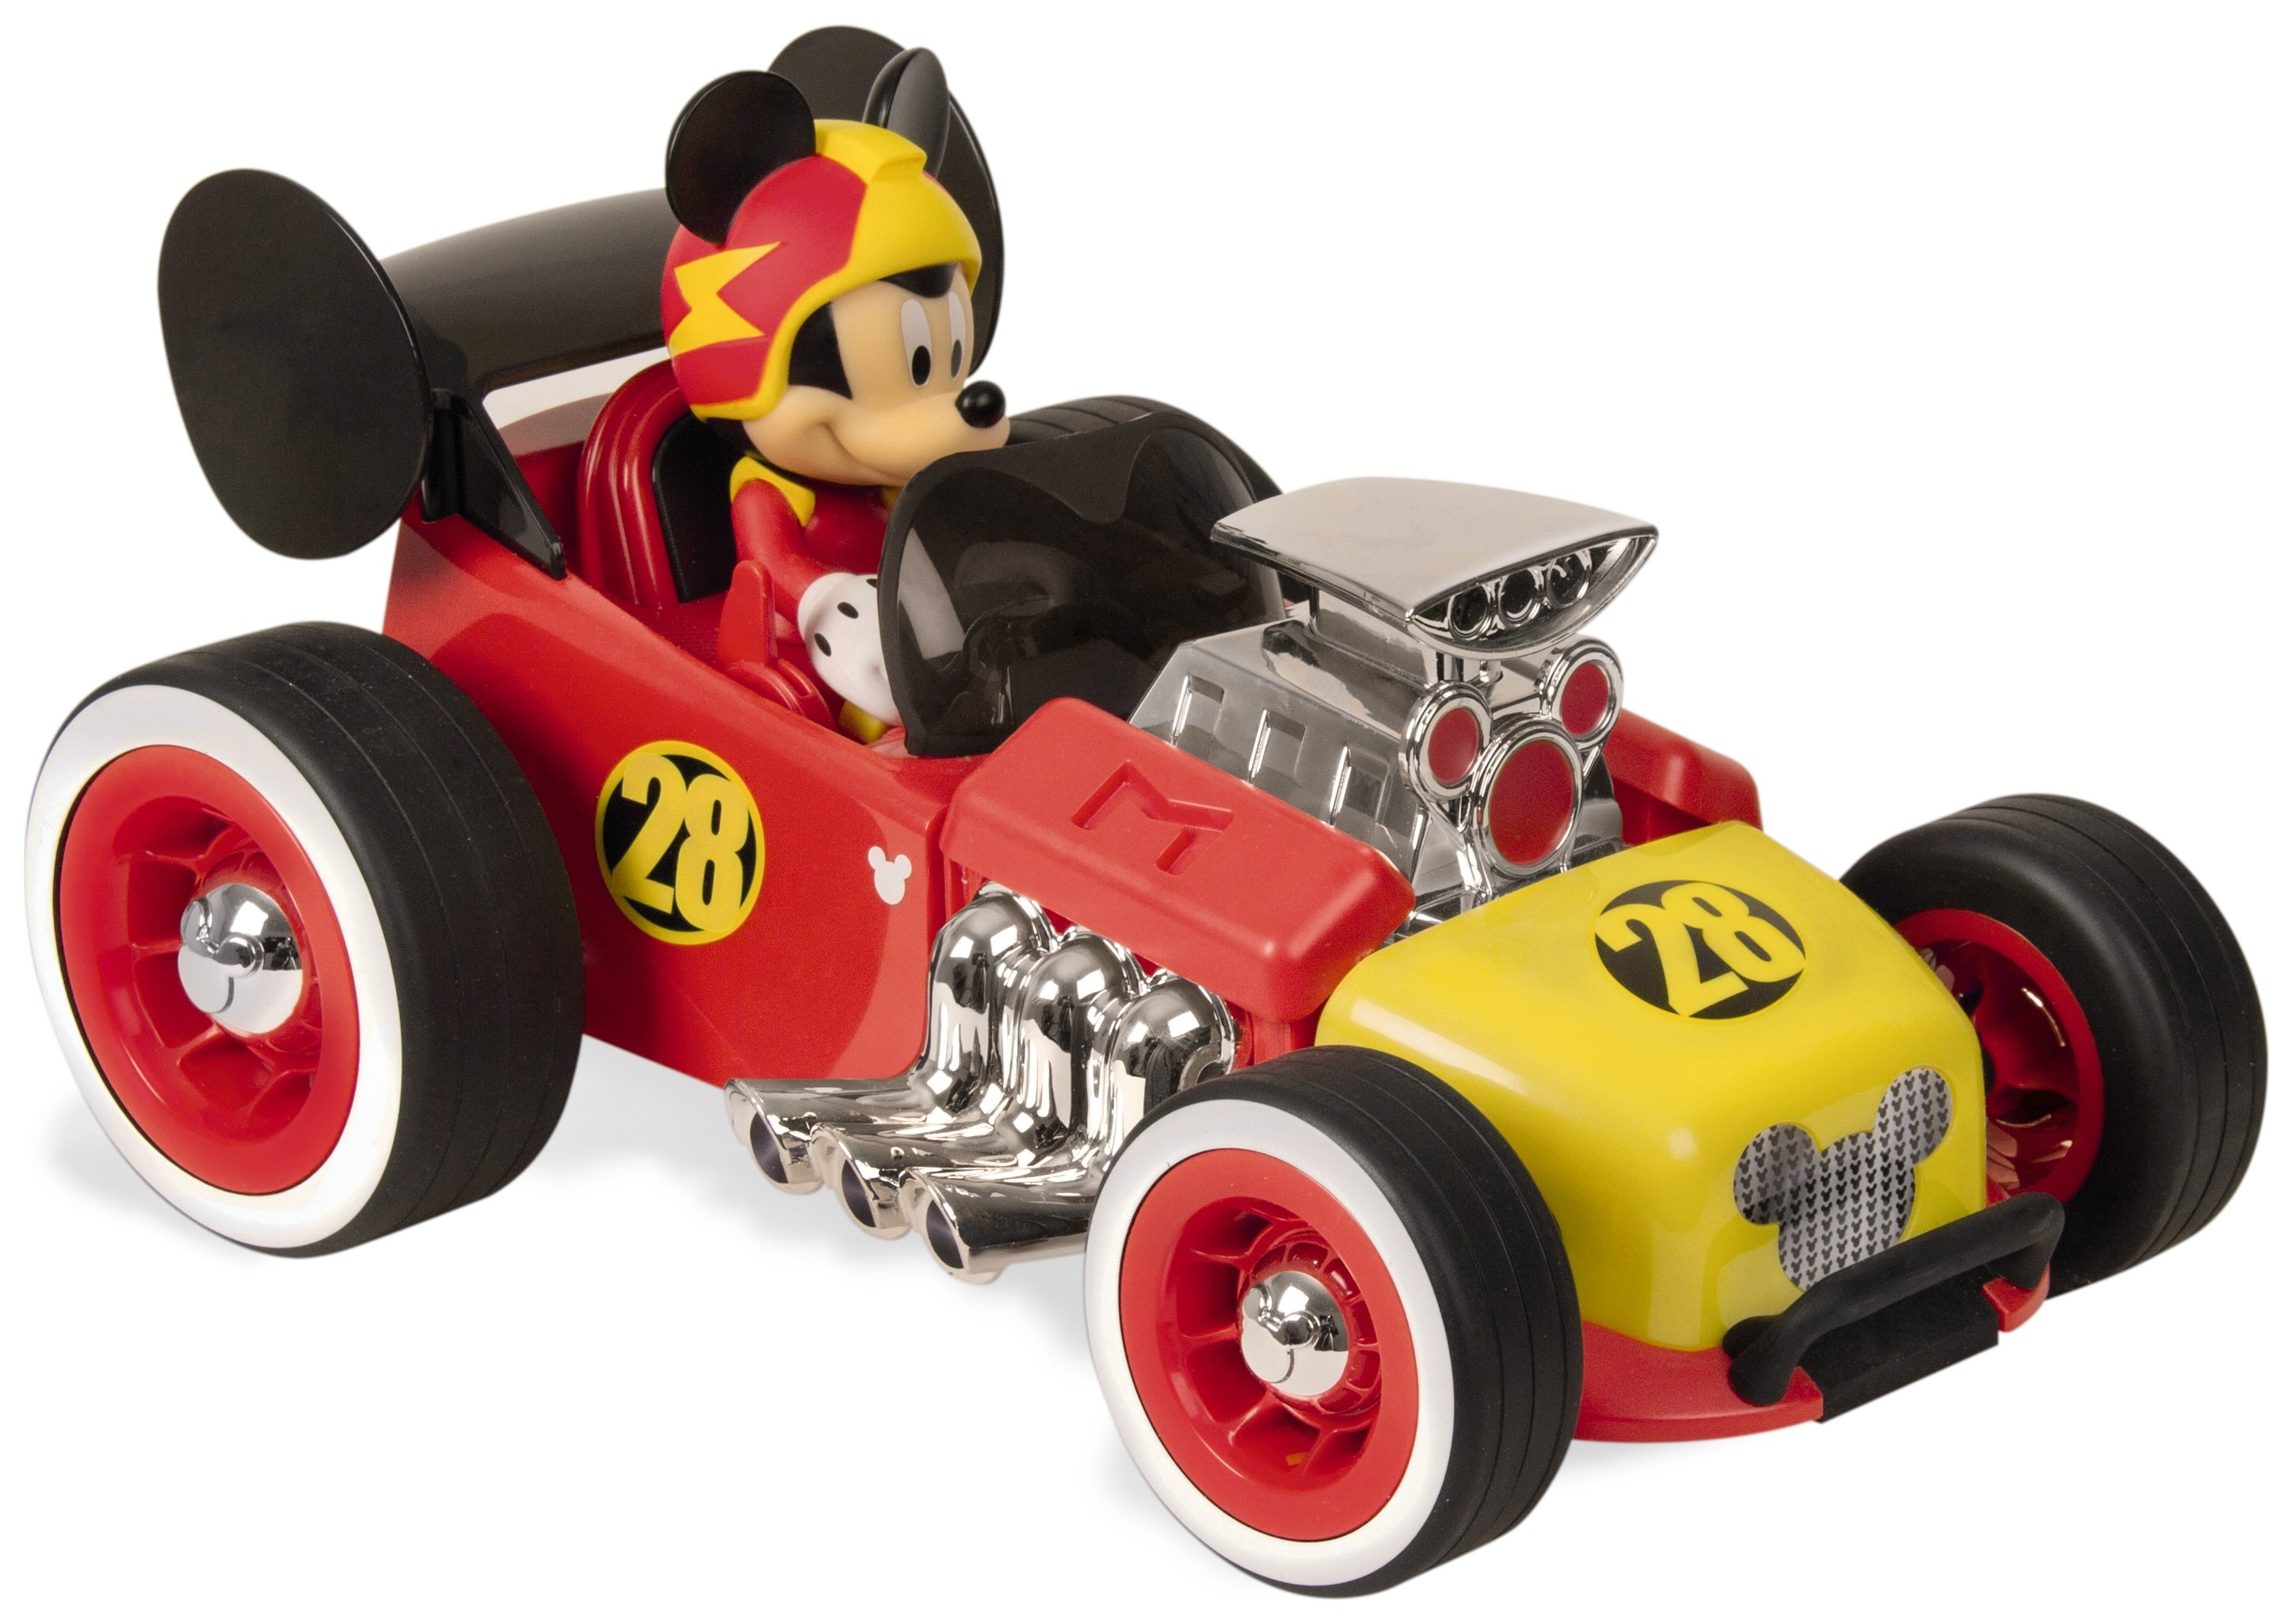 Mickey and the Roadster Racers Mickey's RC Car.